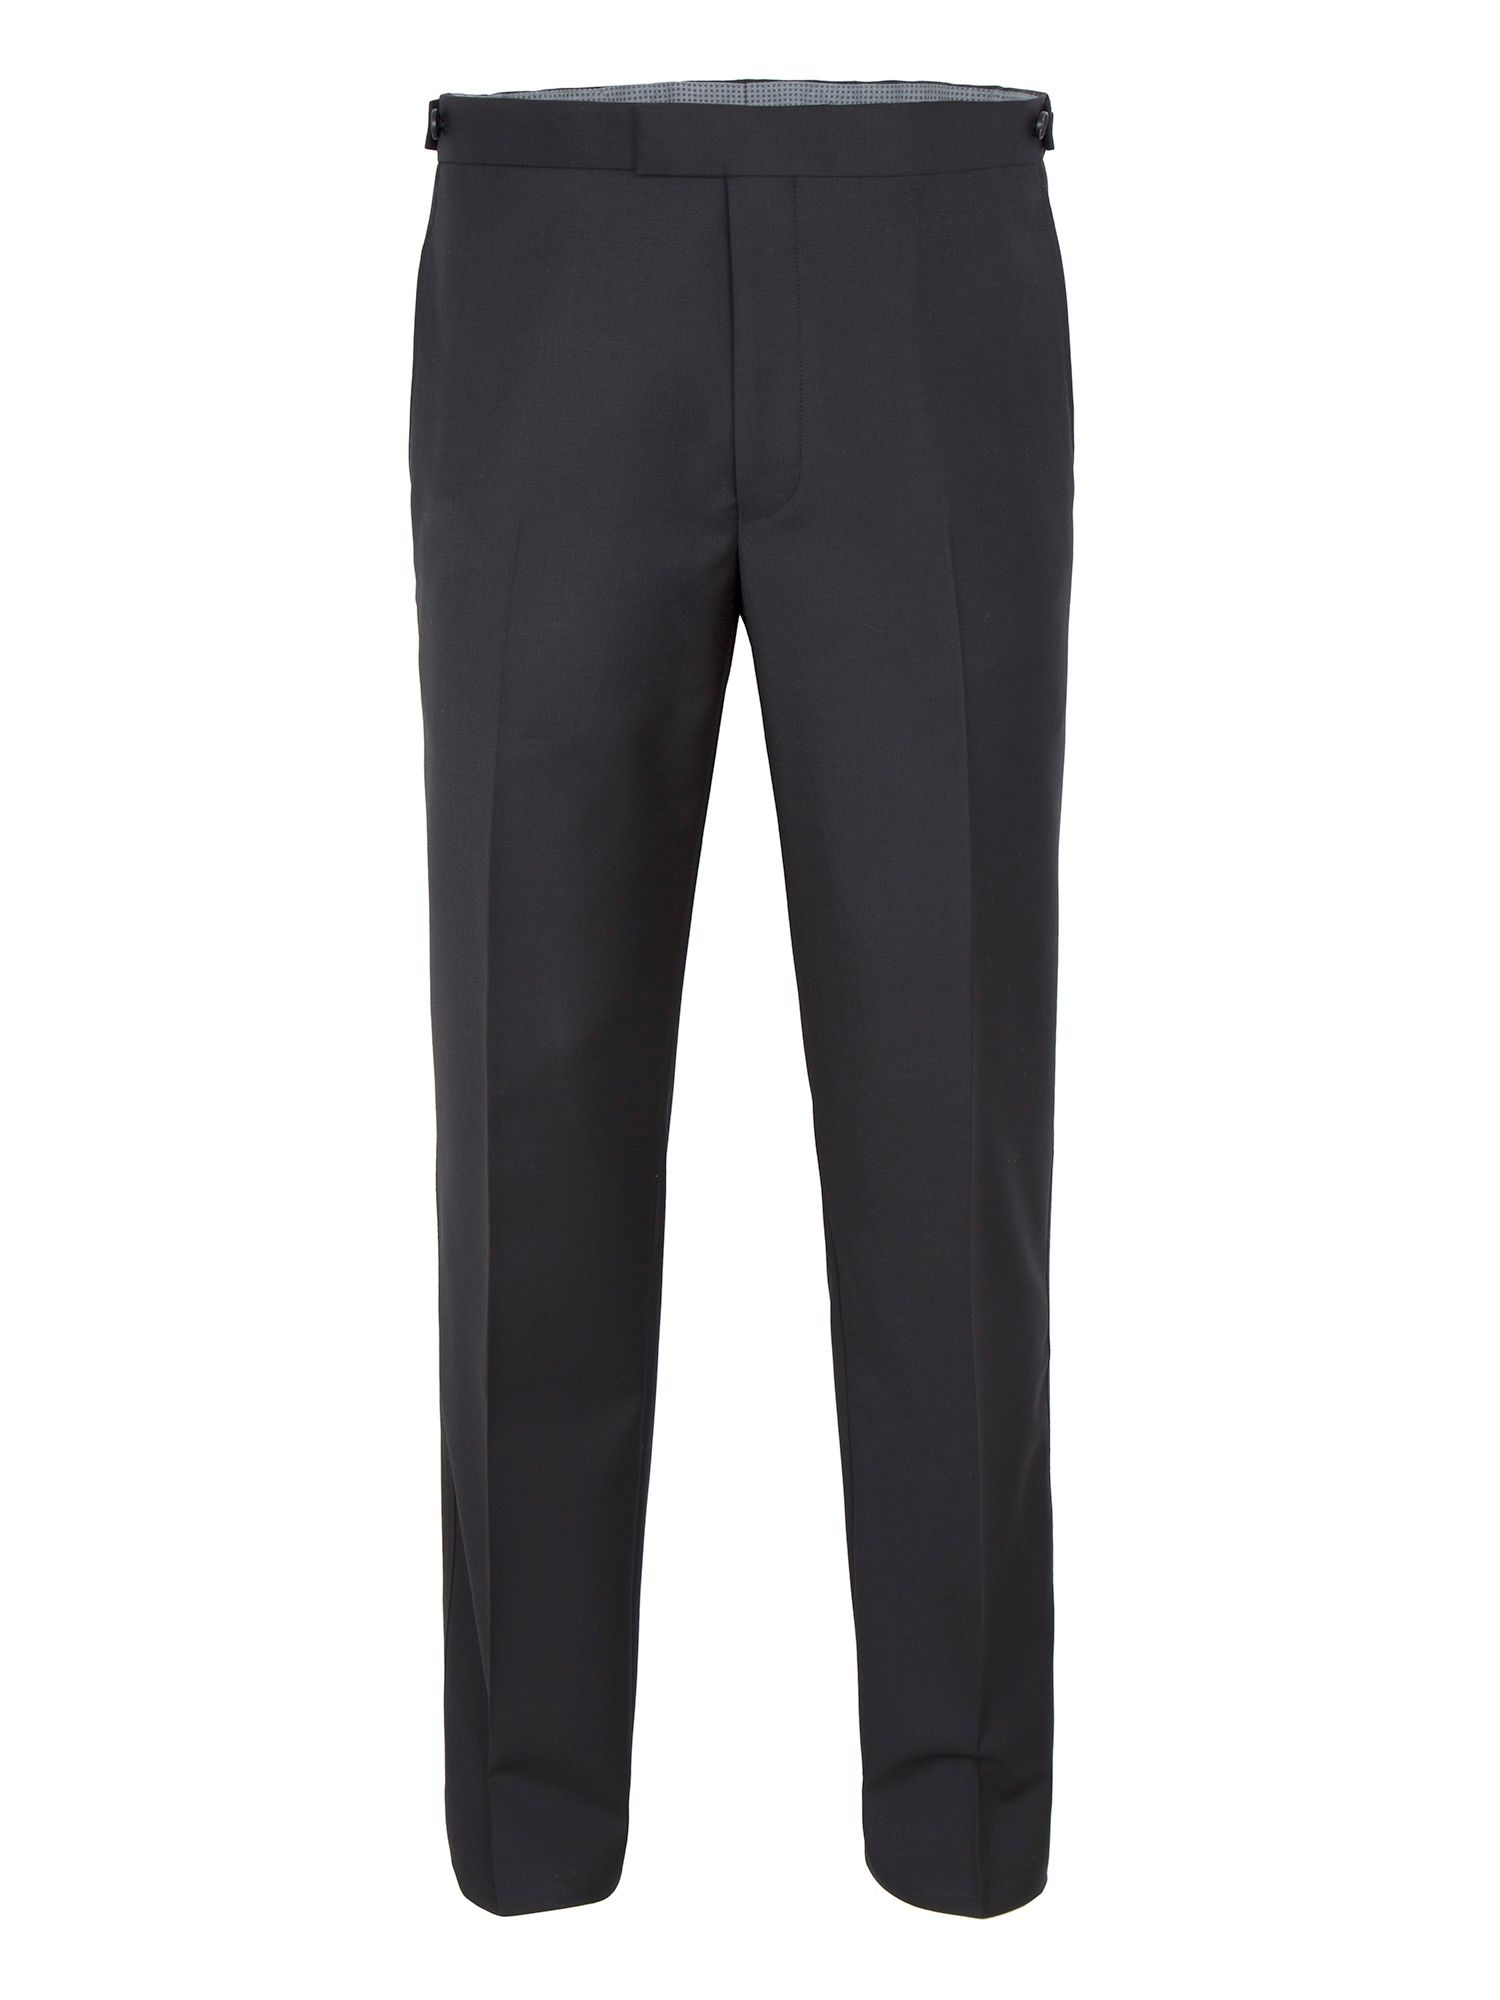 Men's Paul Costelloe Modern fit dinner suit trousers, Black